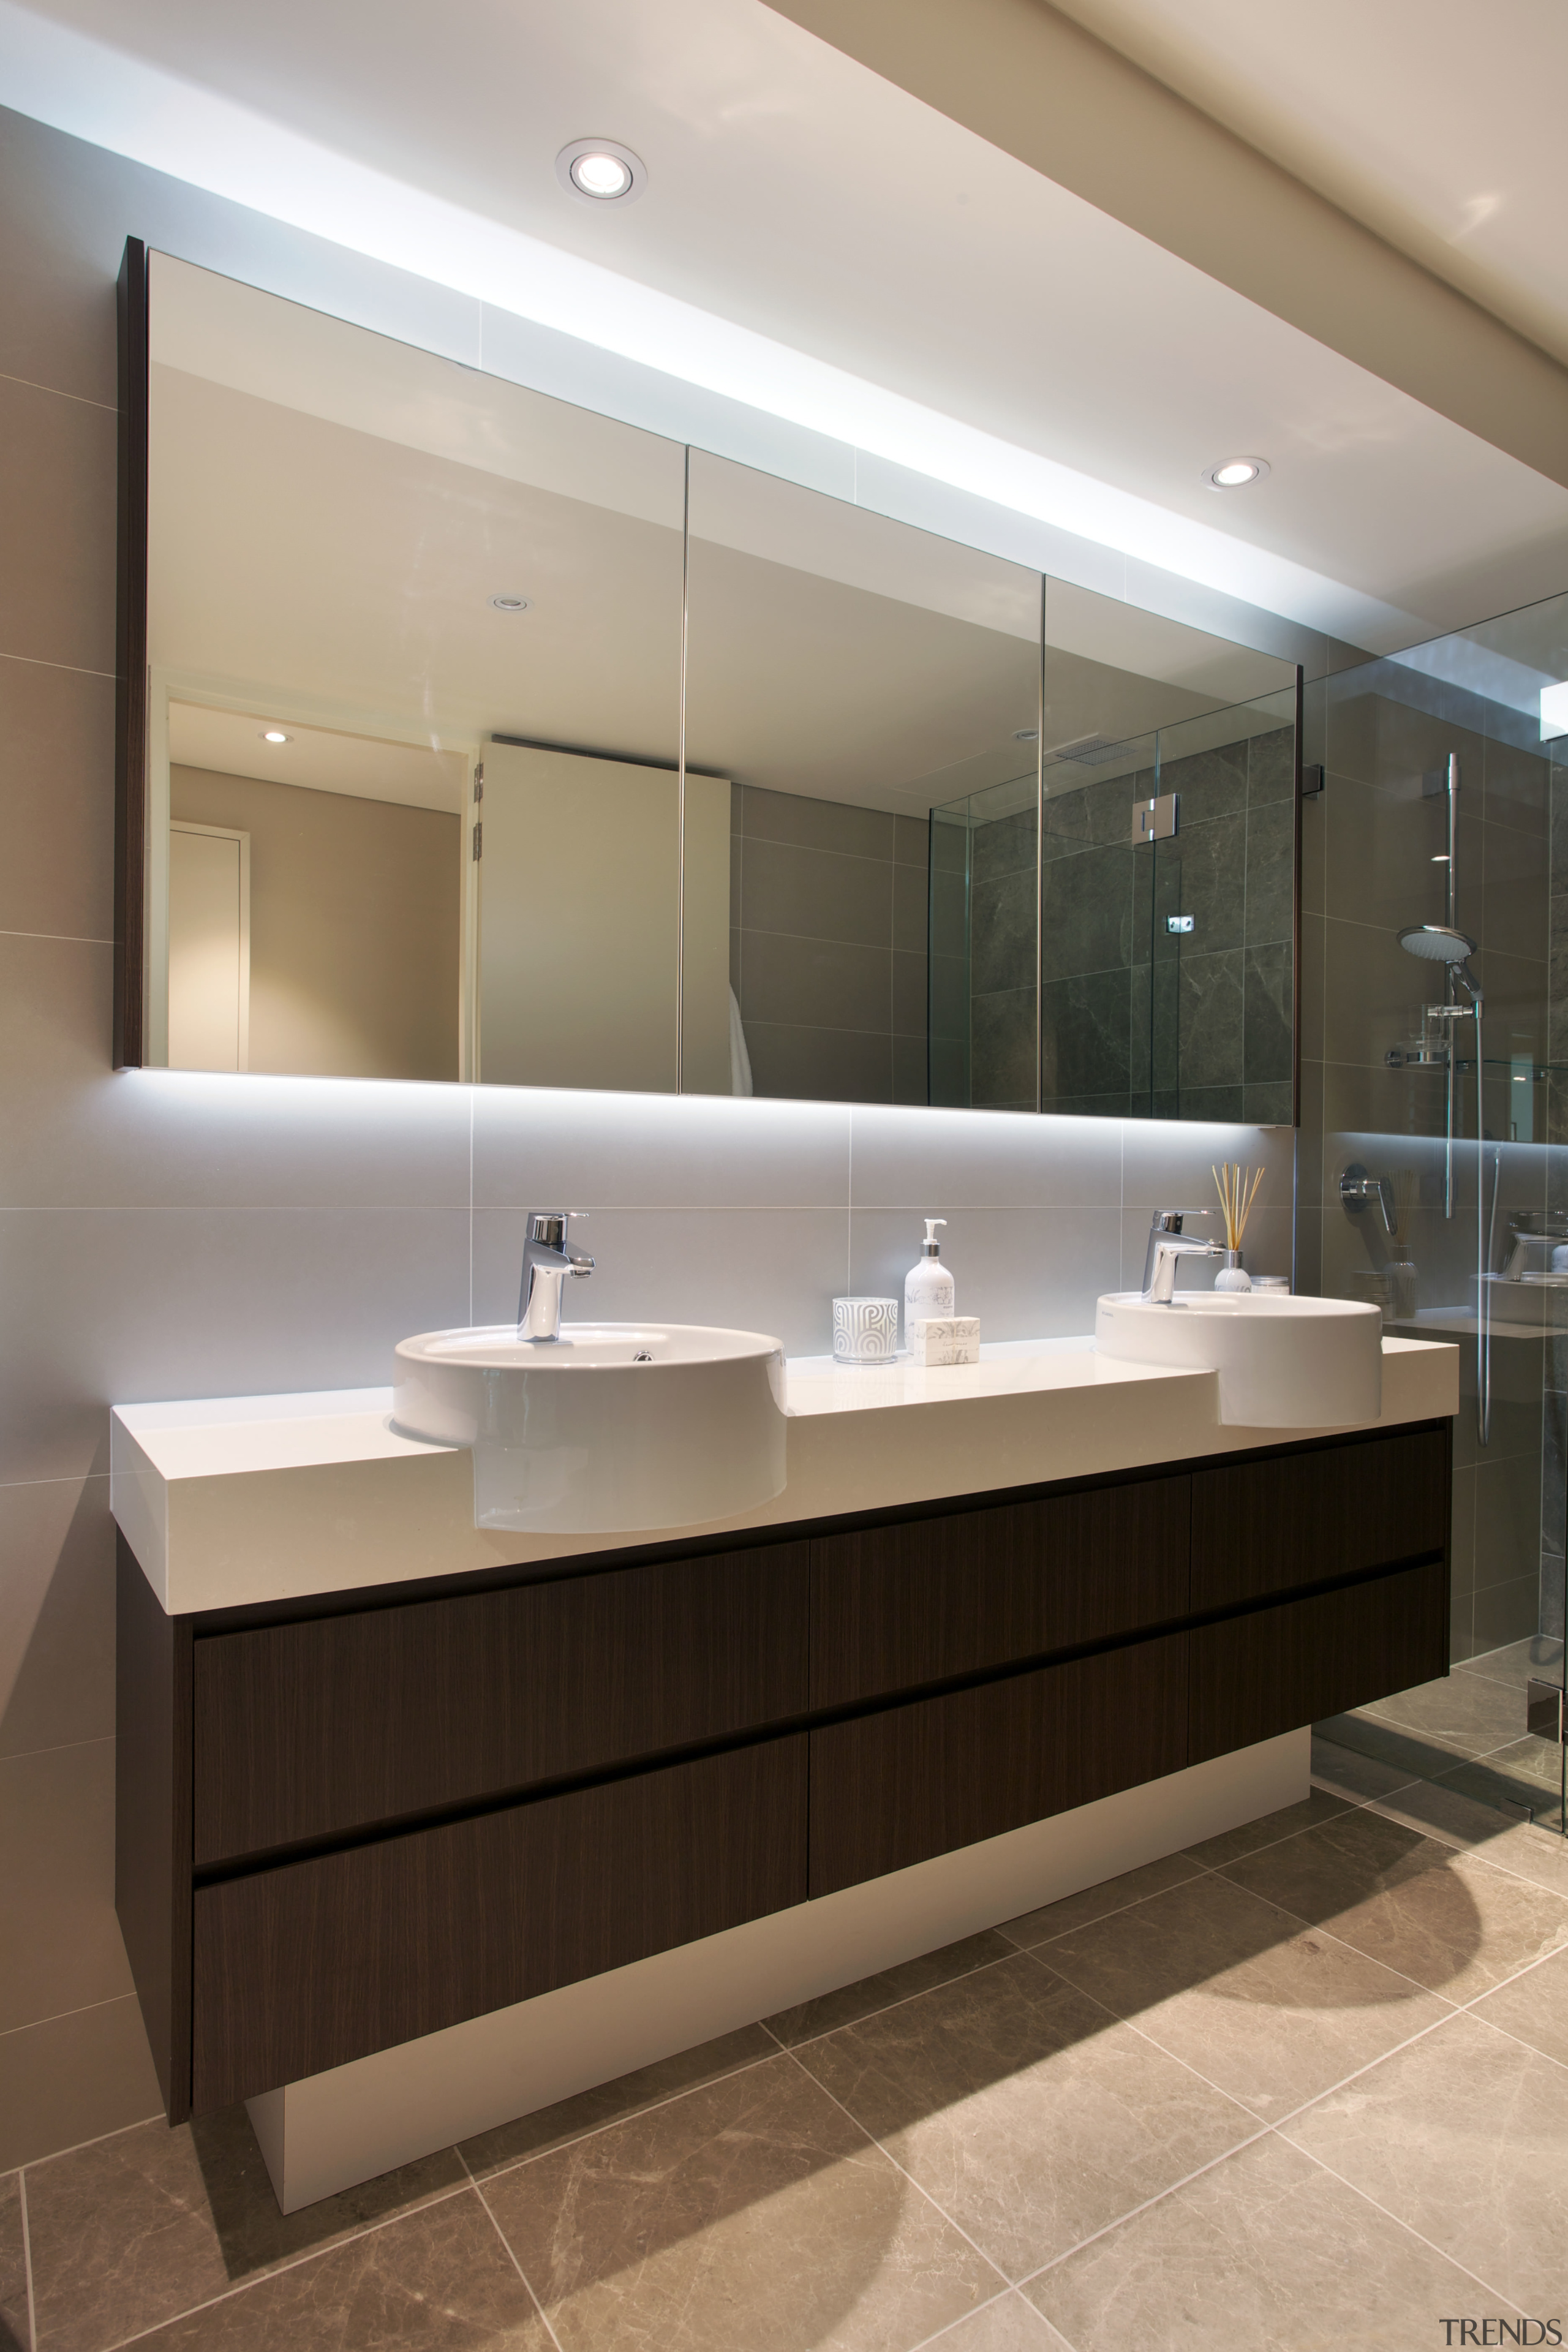 Cantilevered vanity in a timber laminate in new architecture, bathroom, countertop, floor, interior design, product design, sink, gray